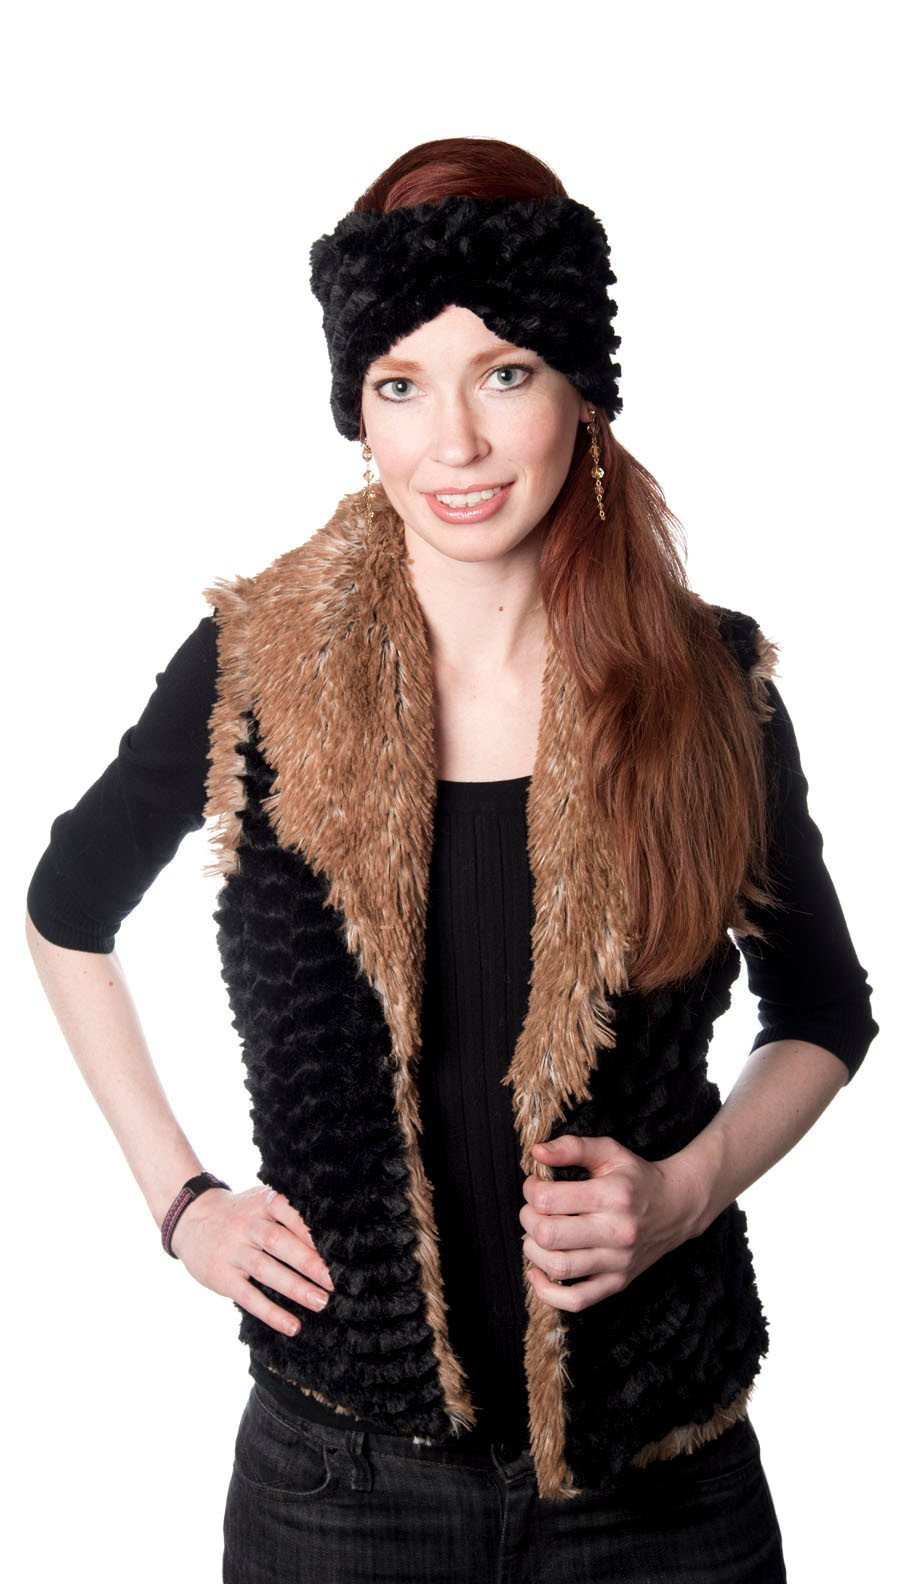 Shawl Collar Vest - Desert Sand Faux Fur with Cuddly Fur in Black